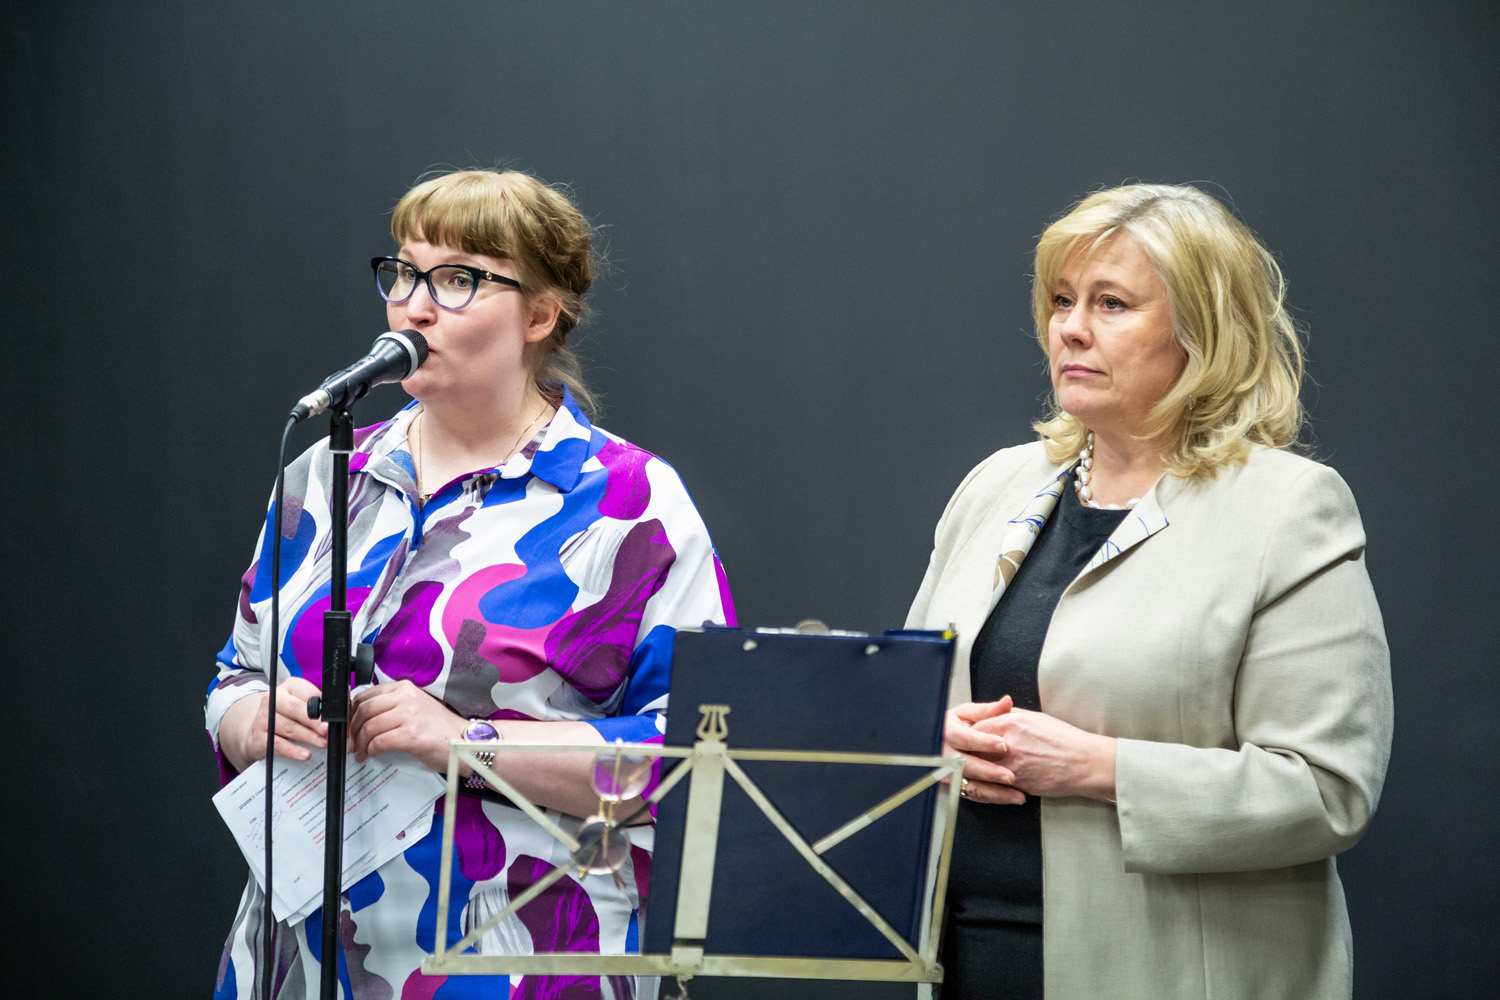 Project Coordinator and Director of Culture stand side by side in front of a microphone